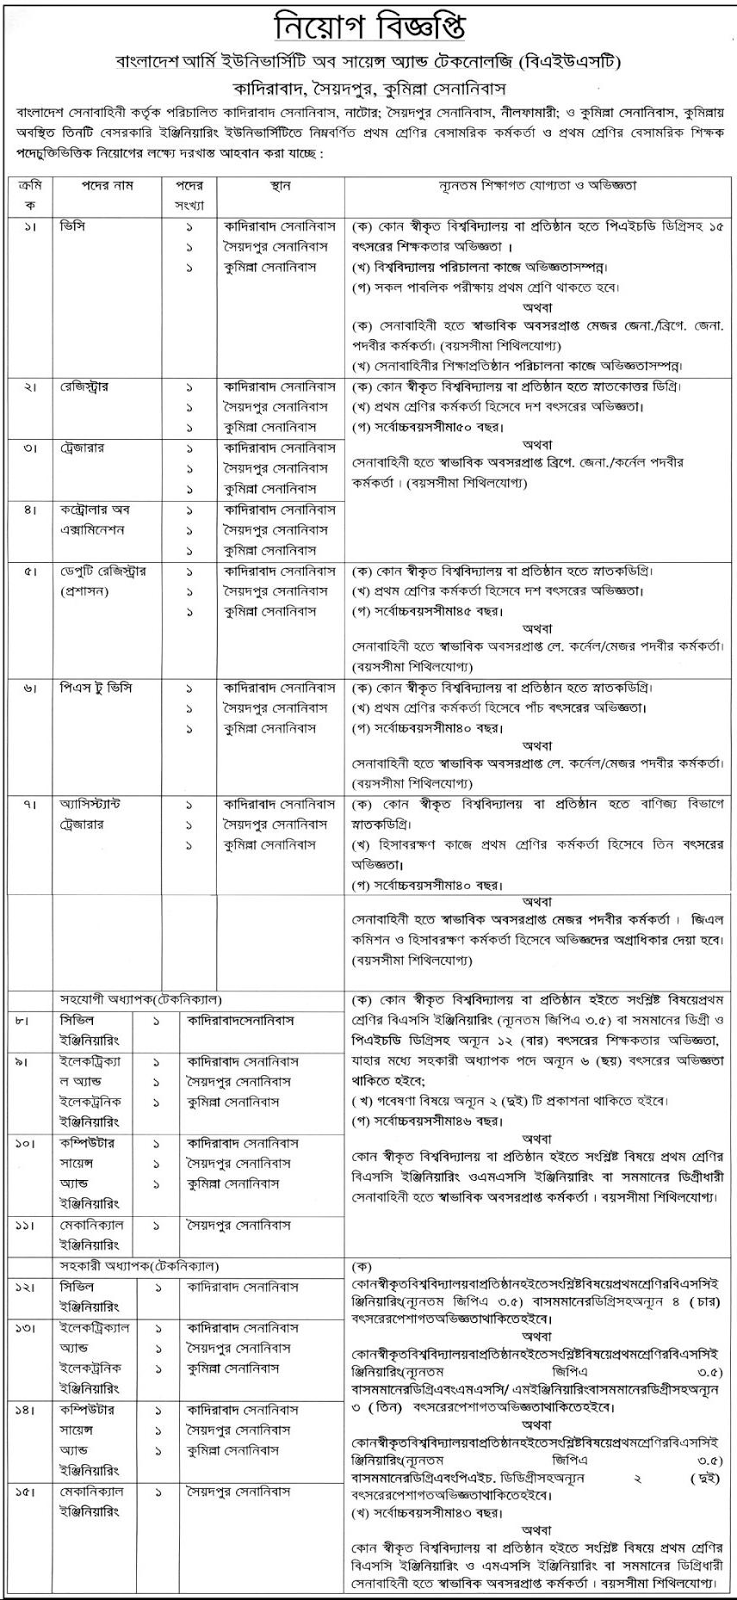 Career at Bangladesh Army University of Science & Technology